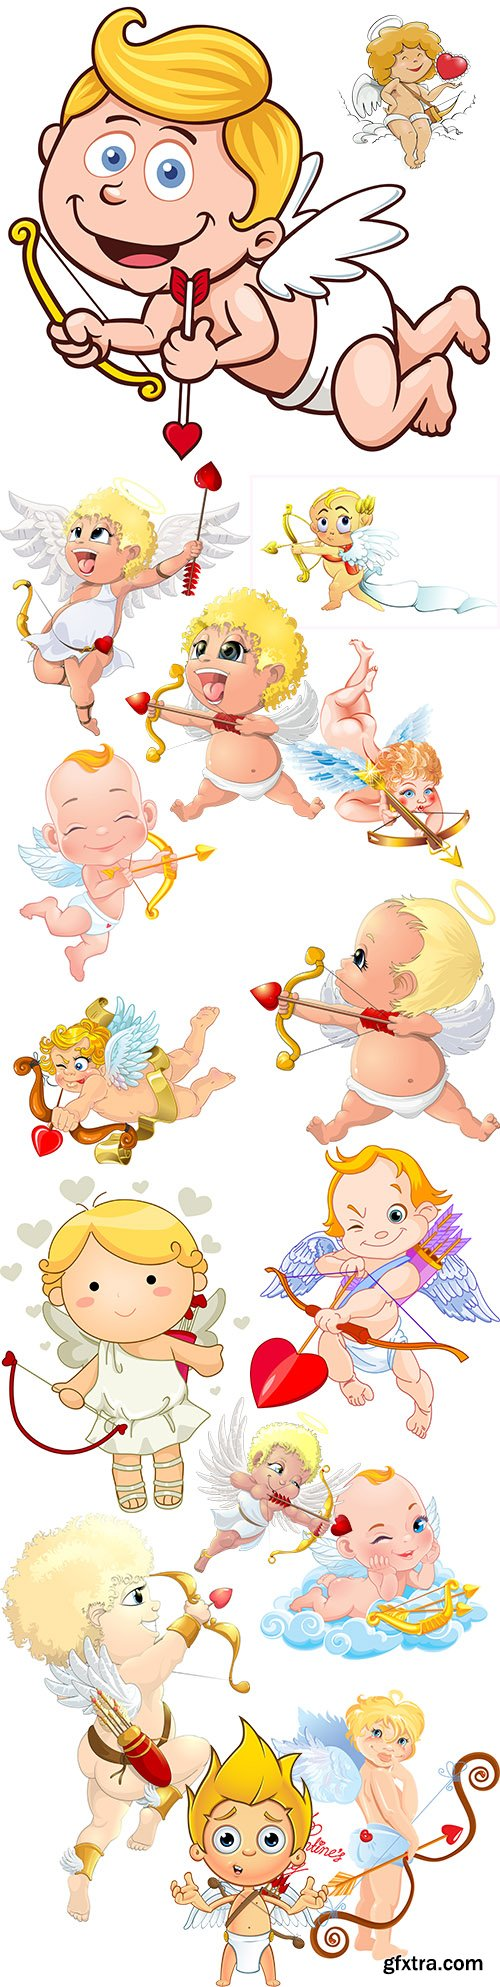 Funny cartoon cupid St. Valentine's day romantic collection